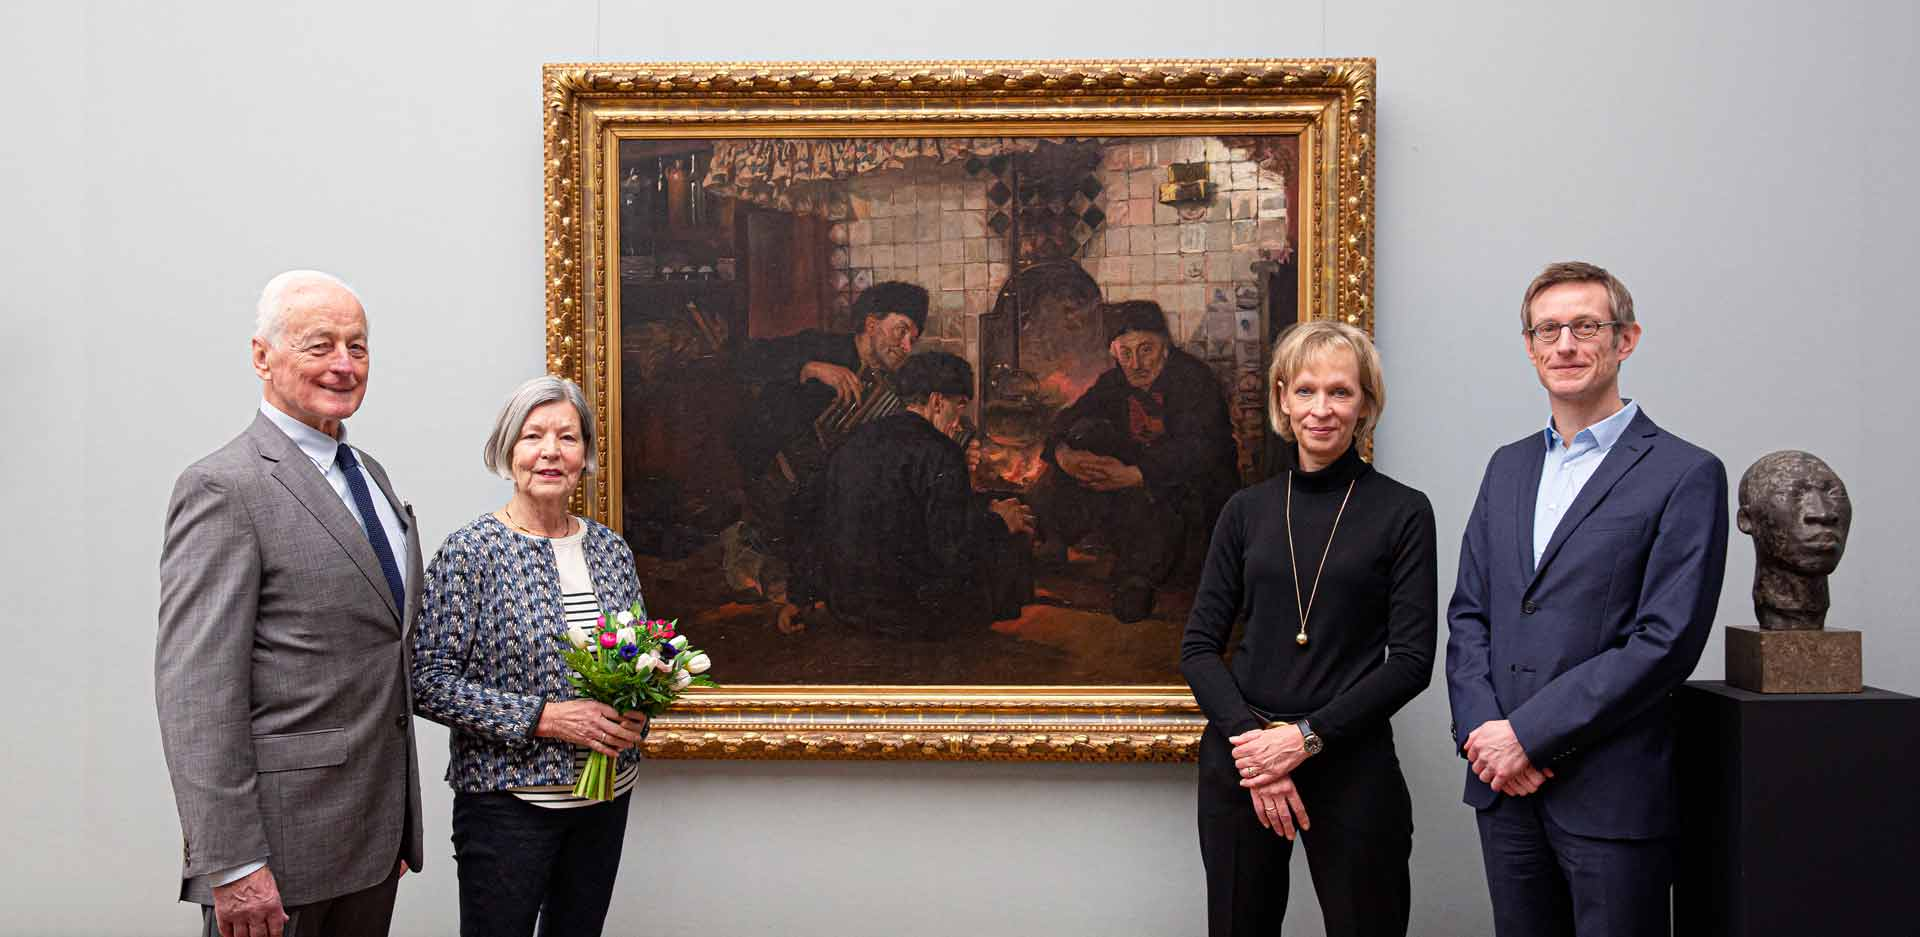 """Mr and Mrs Kaupomannsennecke, Christina Haak and Ralph Gleis in front of the painting """"Men by the Fireplace"""" by Paula Monjé in the Alte Nationalgalerie"""